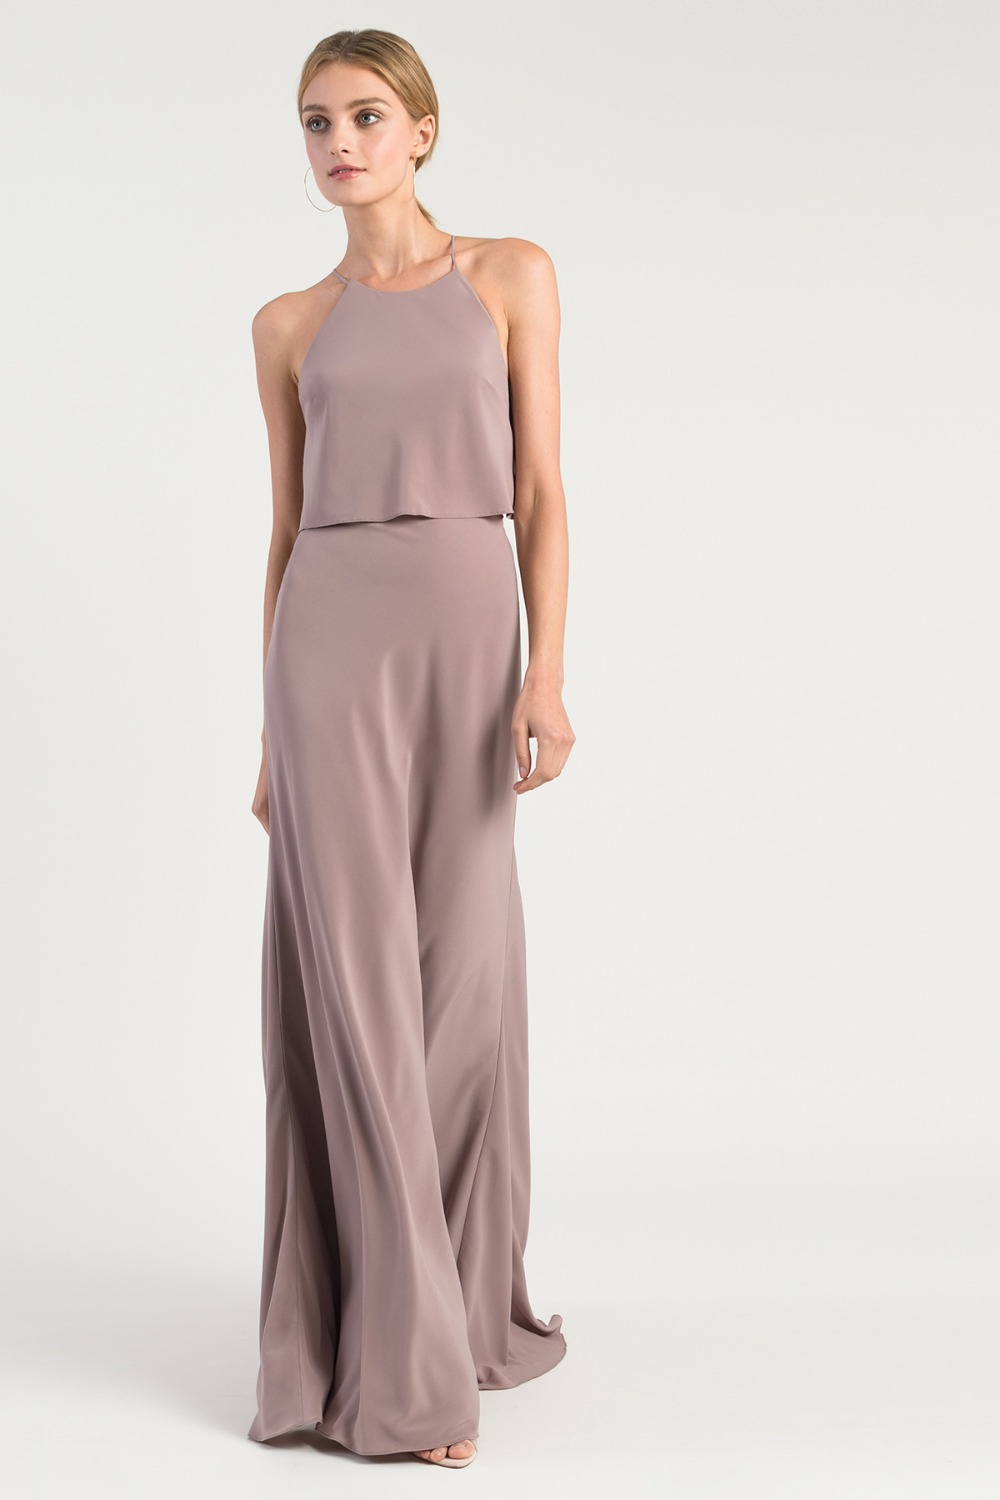 Elle Fig bridesmaid dress by Jenny Yoo